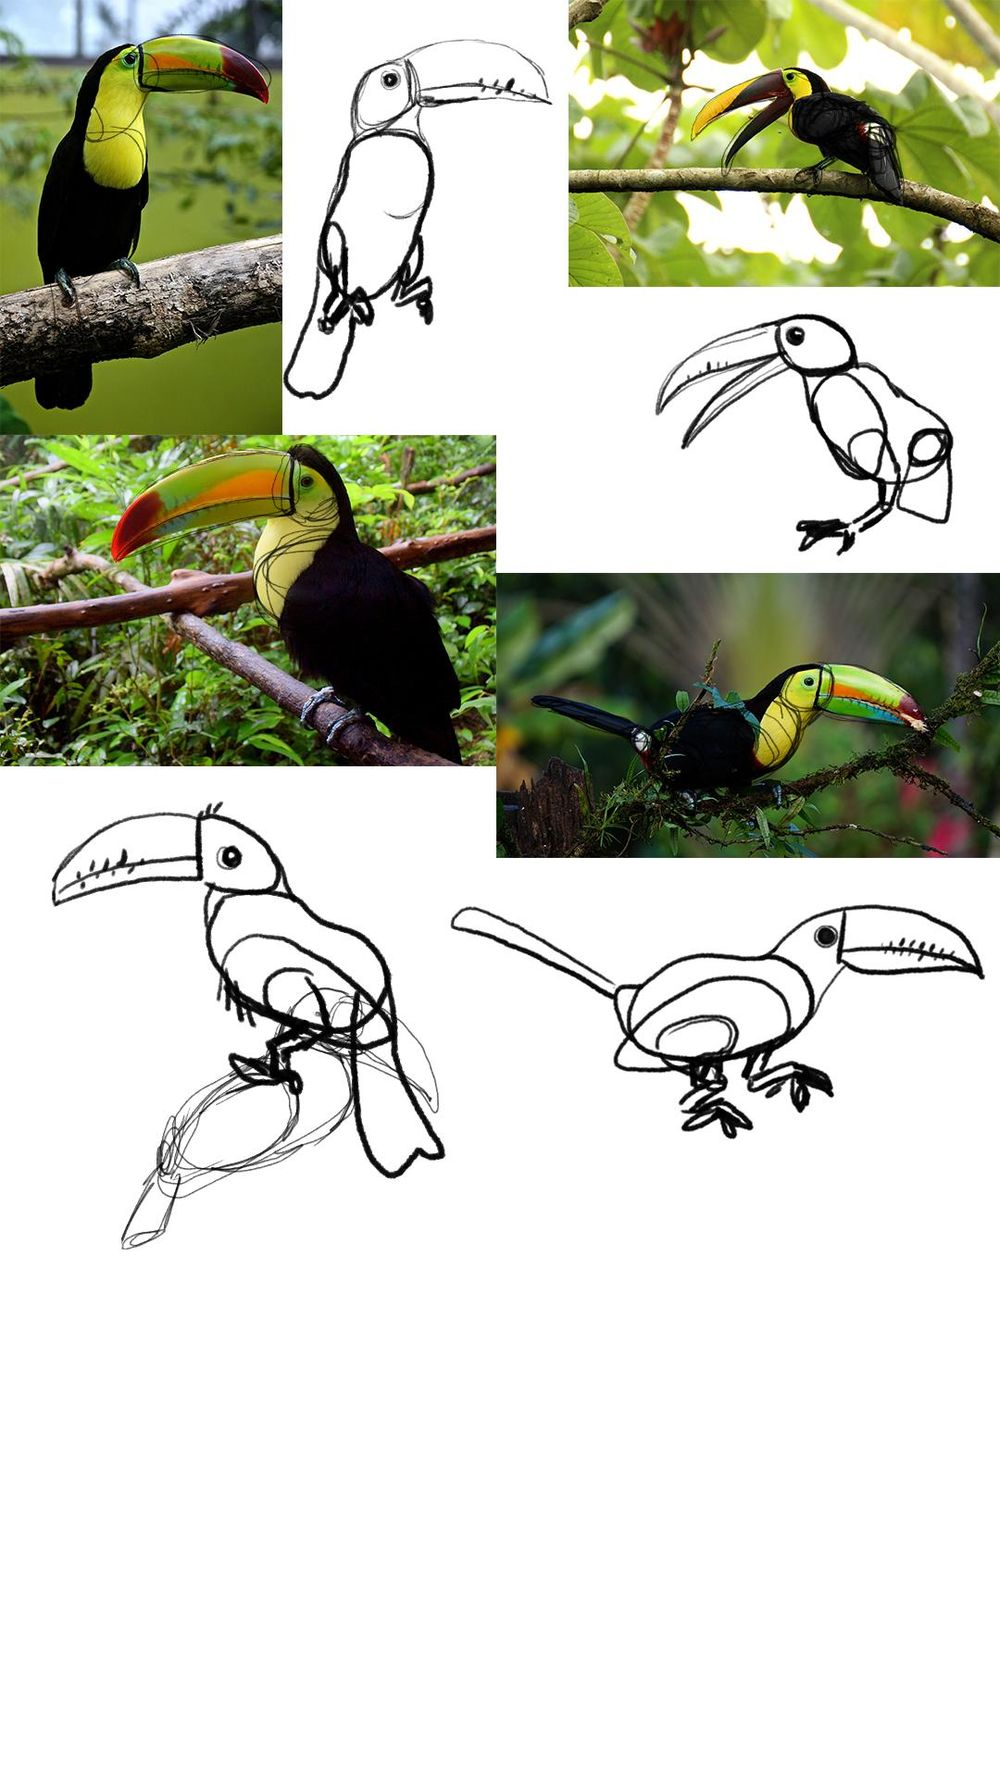 Hipster Toucan - image 1 - student project